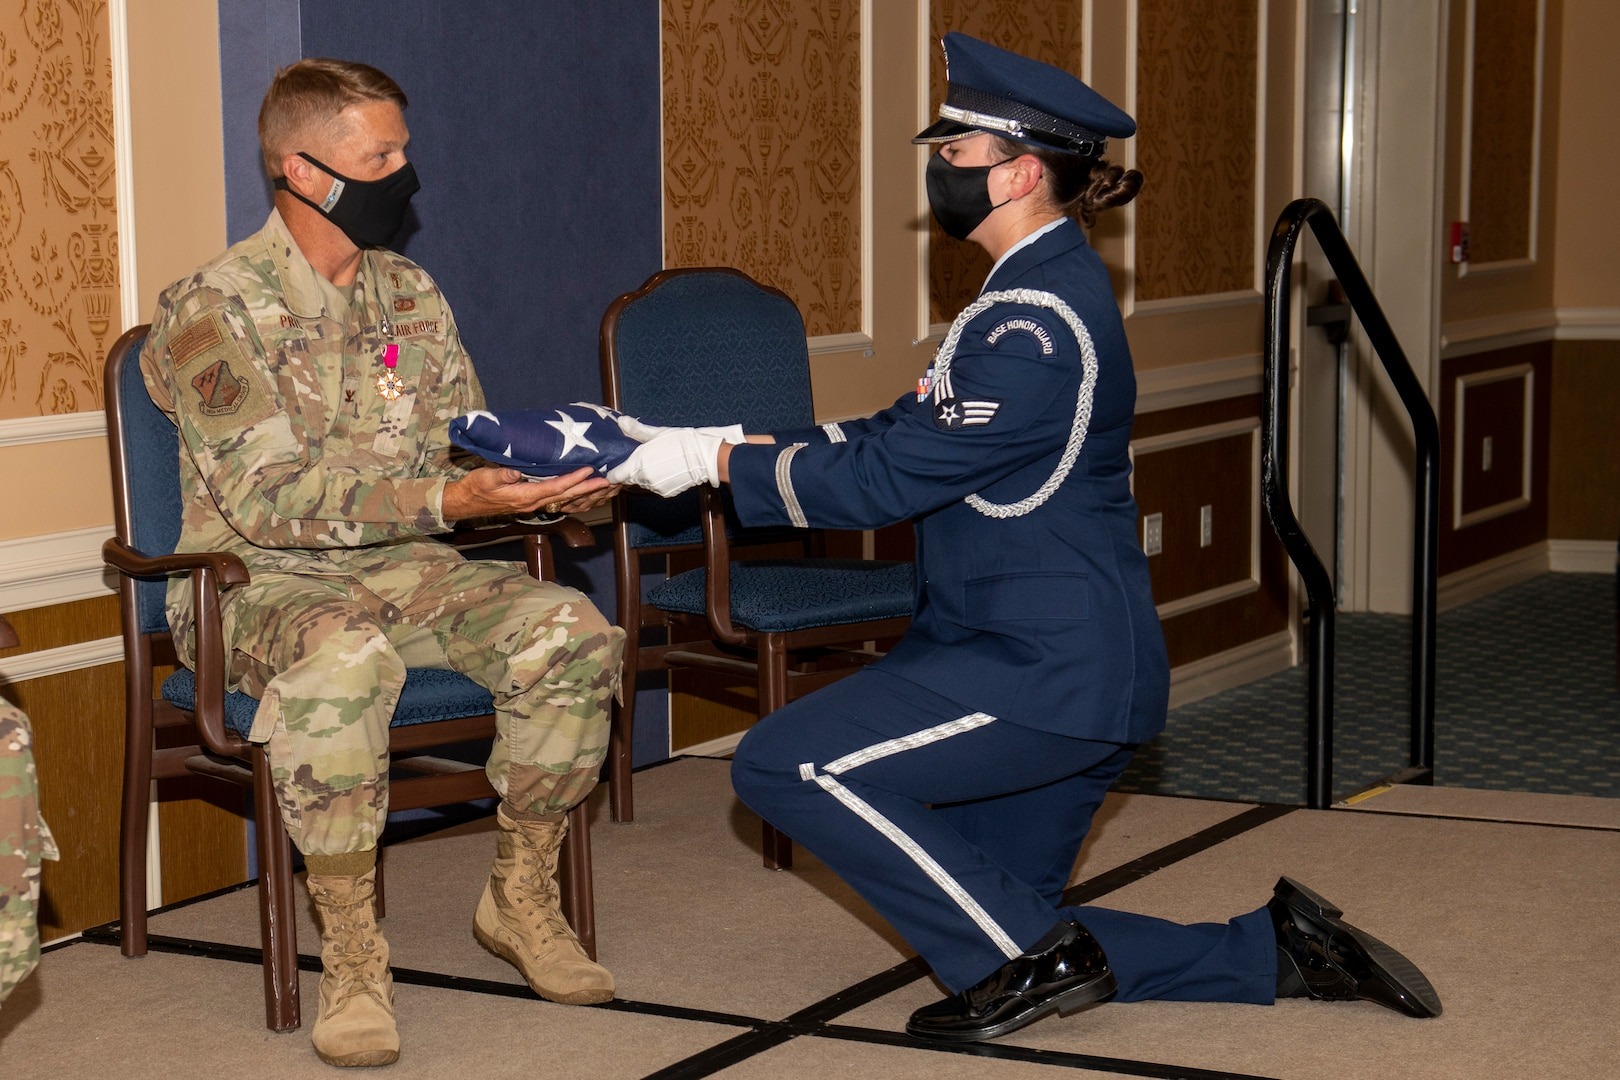 A member of the Honor Guard kneels before Col. Jason Price, outgoing 192nd Medical Group commander, and presents a folded U.S. flag to him upon his retirement.